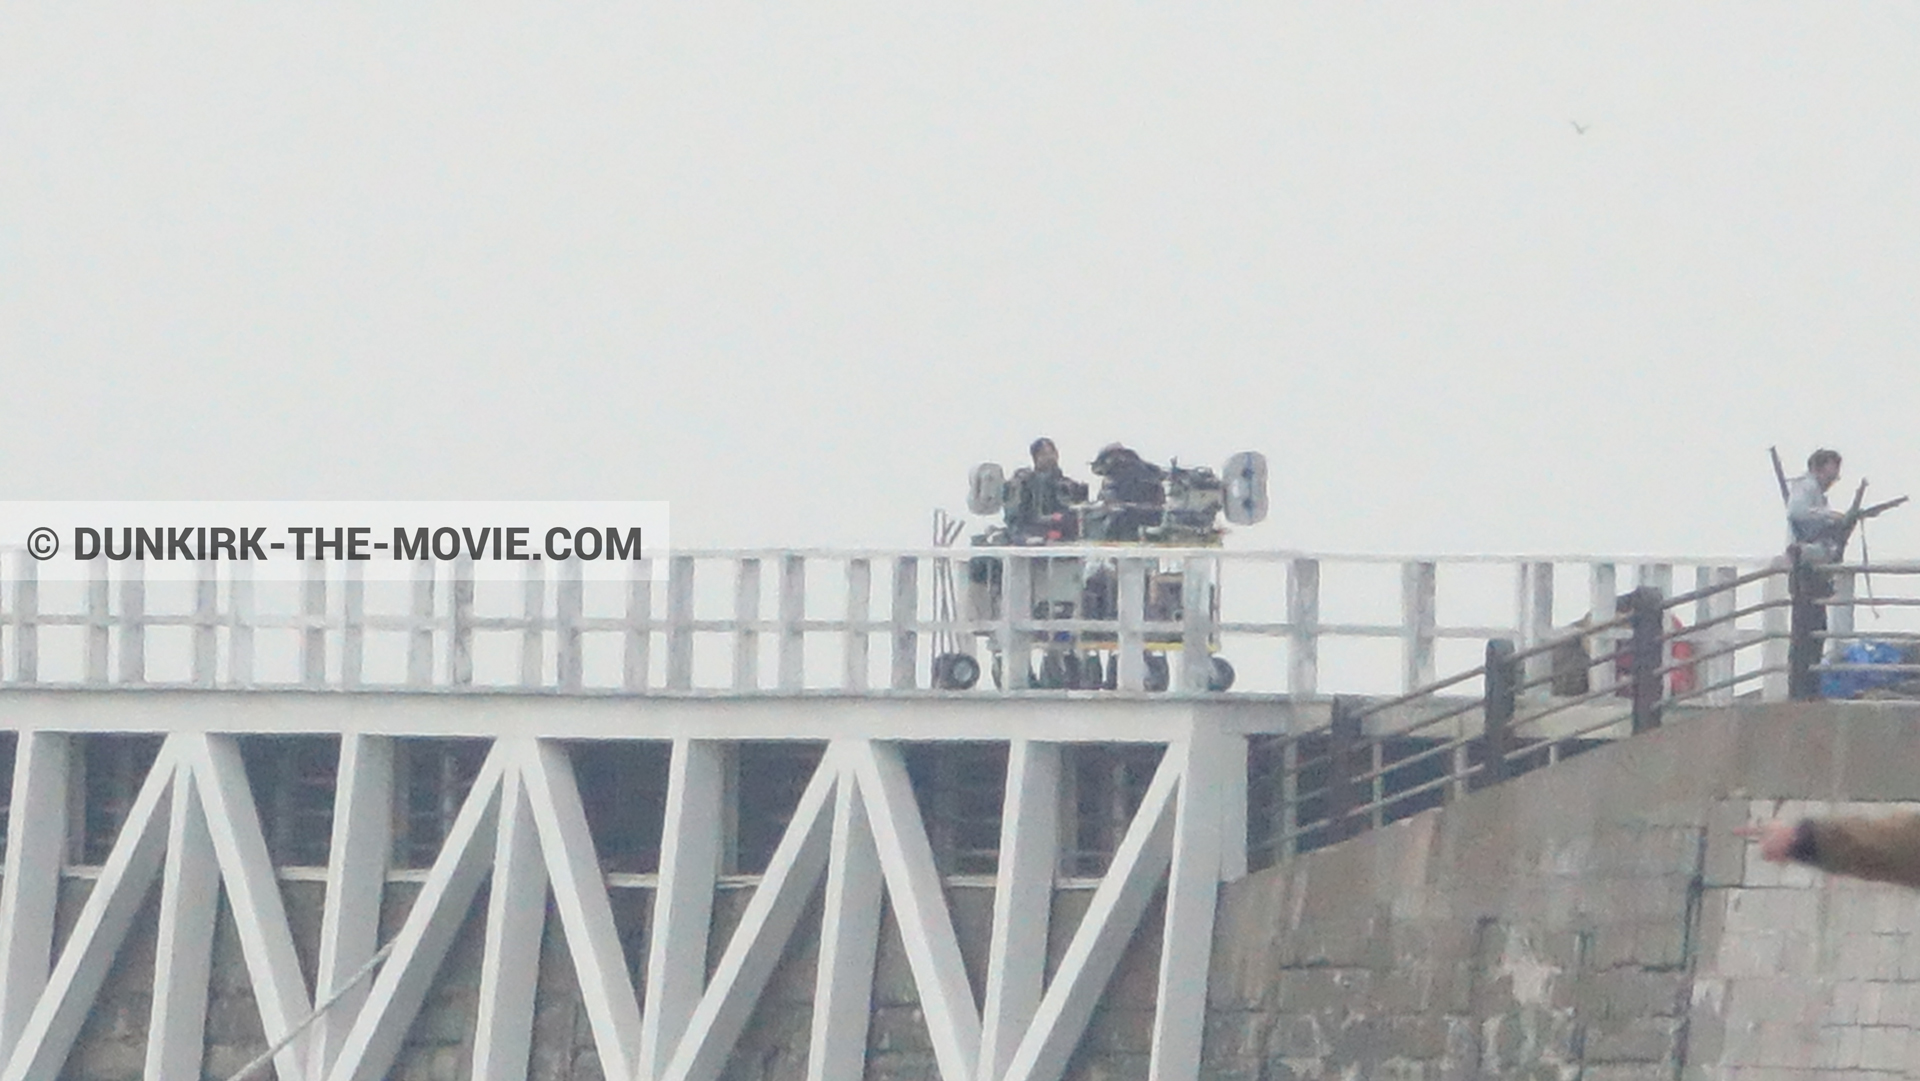 Photo on canvas number 228, of the filming of the film Dunkirk